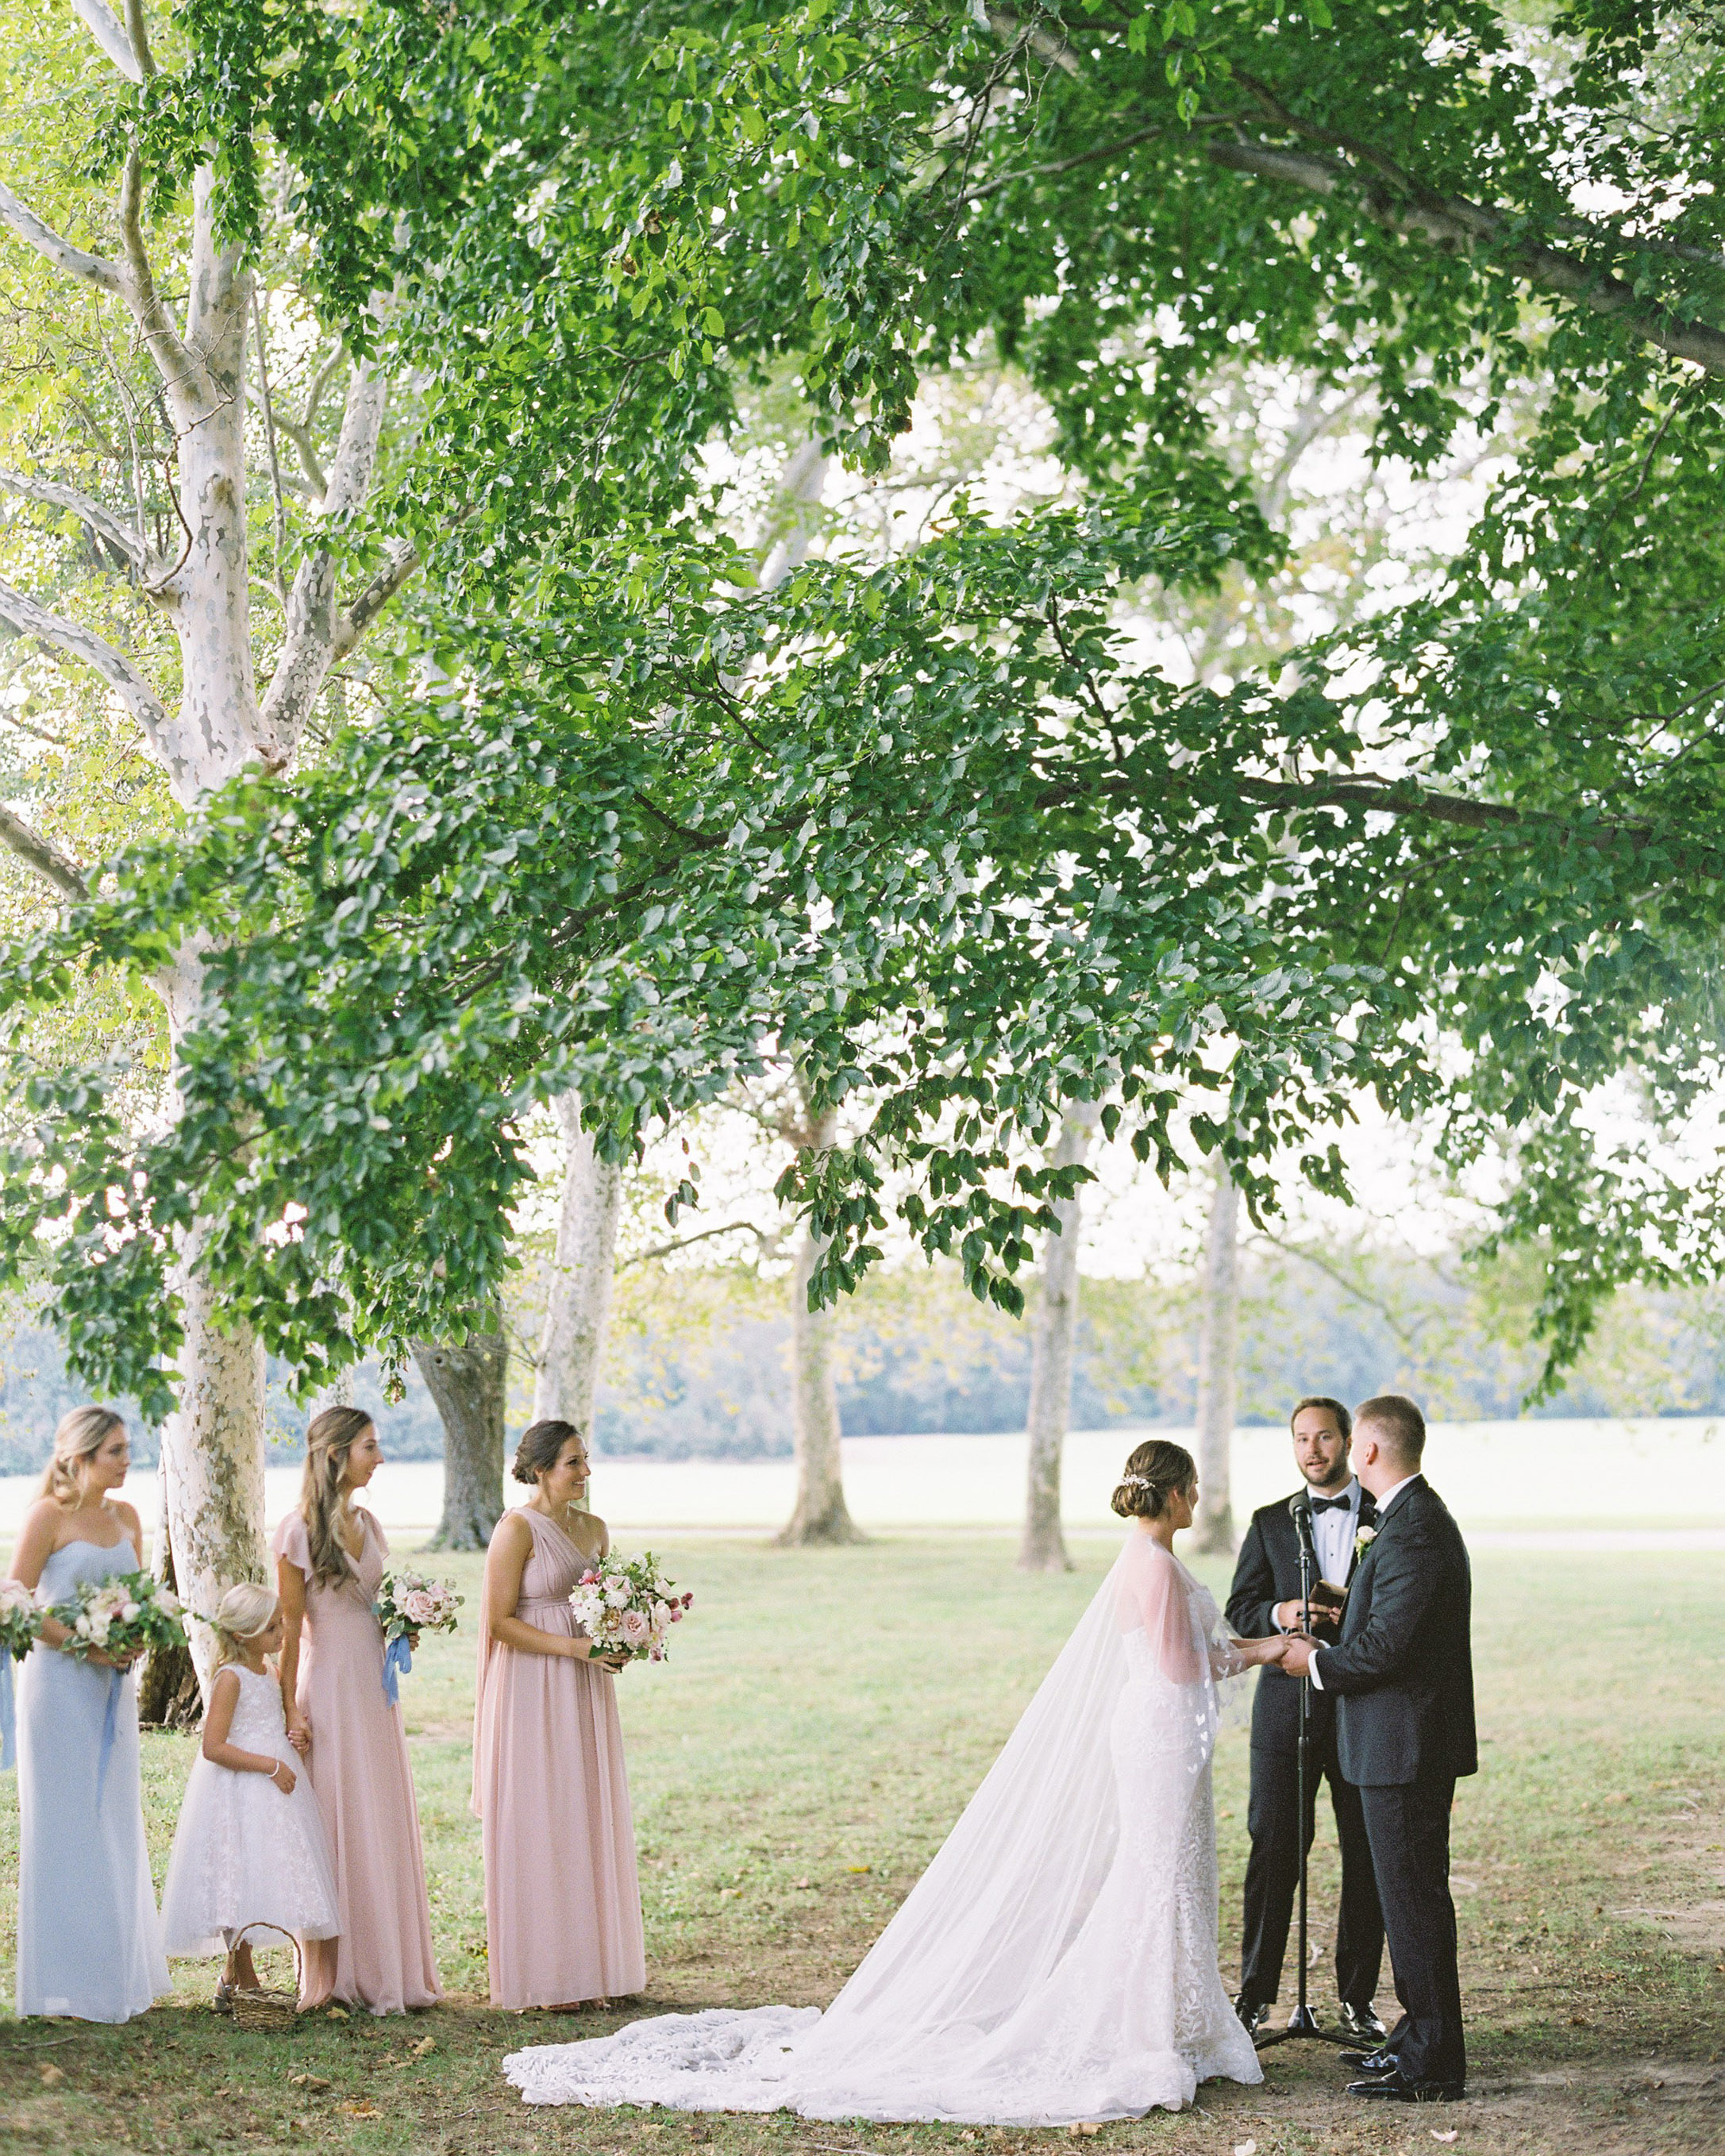 outdoor wedding ceremony bride groom bridesmaids